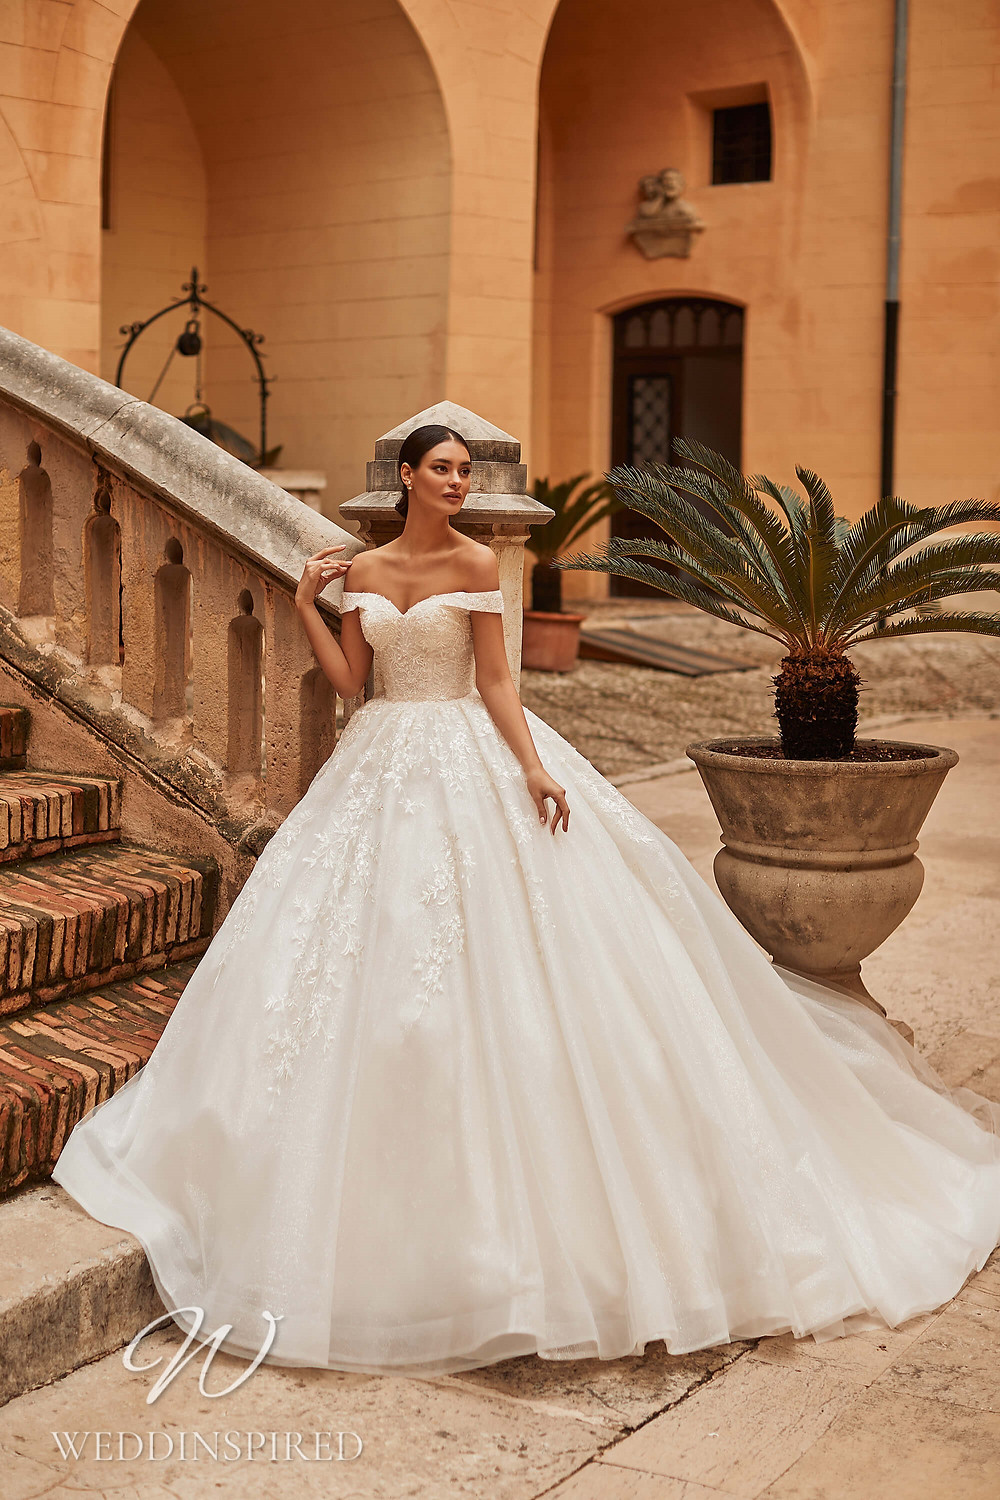 A Royal by Naviblue 2021 lace and tulle off the shoulder princess wedding dress